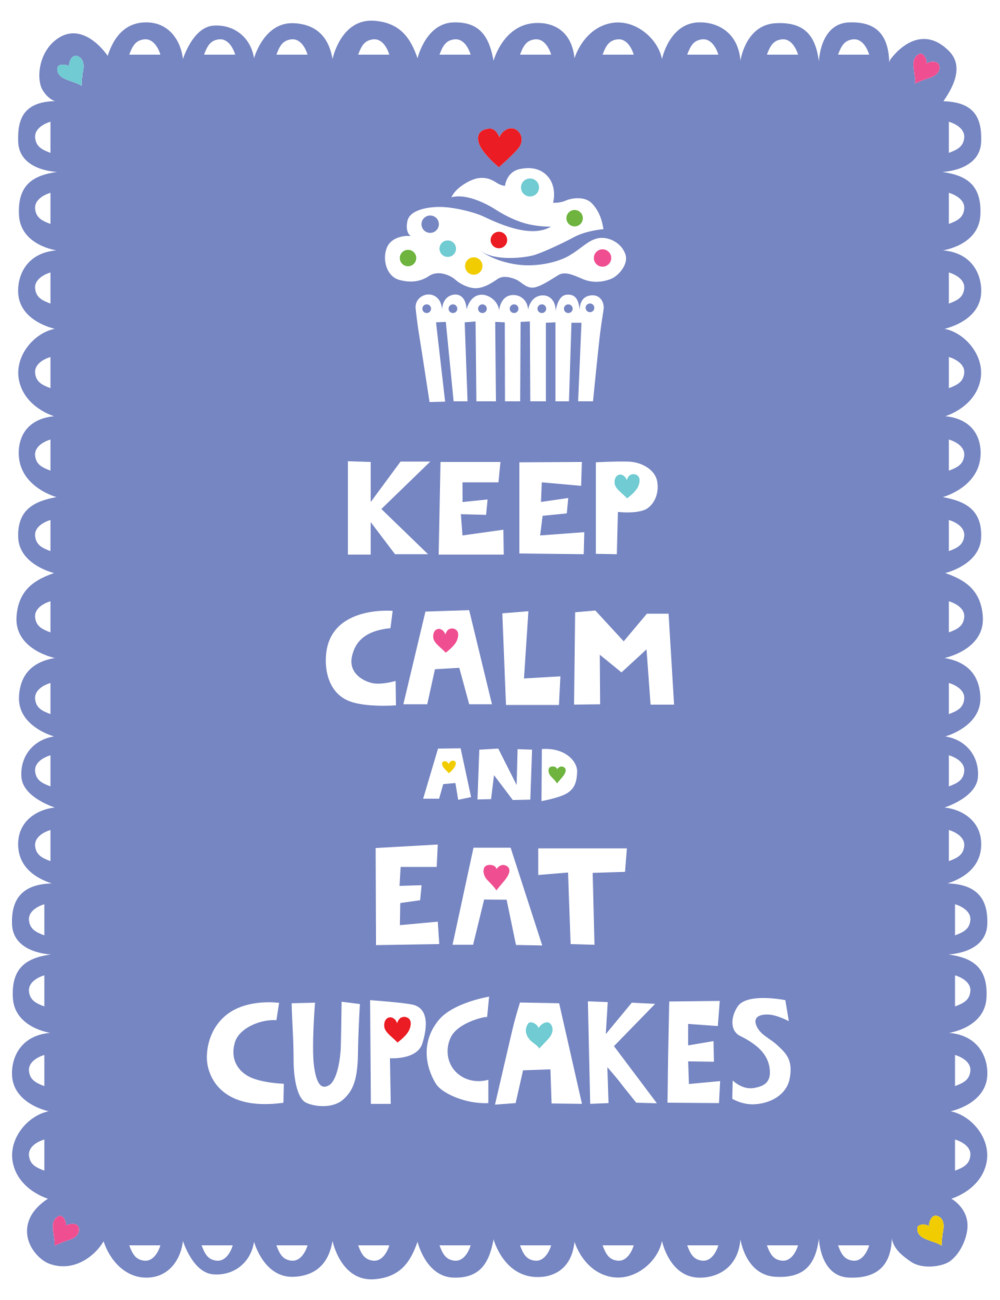 keep_calm_eat_cupcakes_type_andi_bird.png